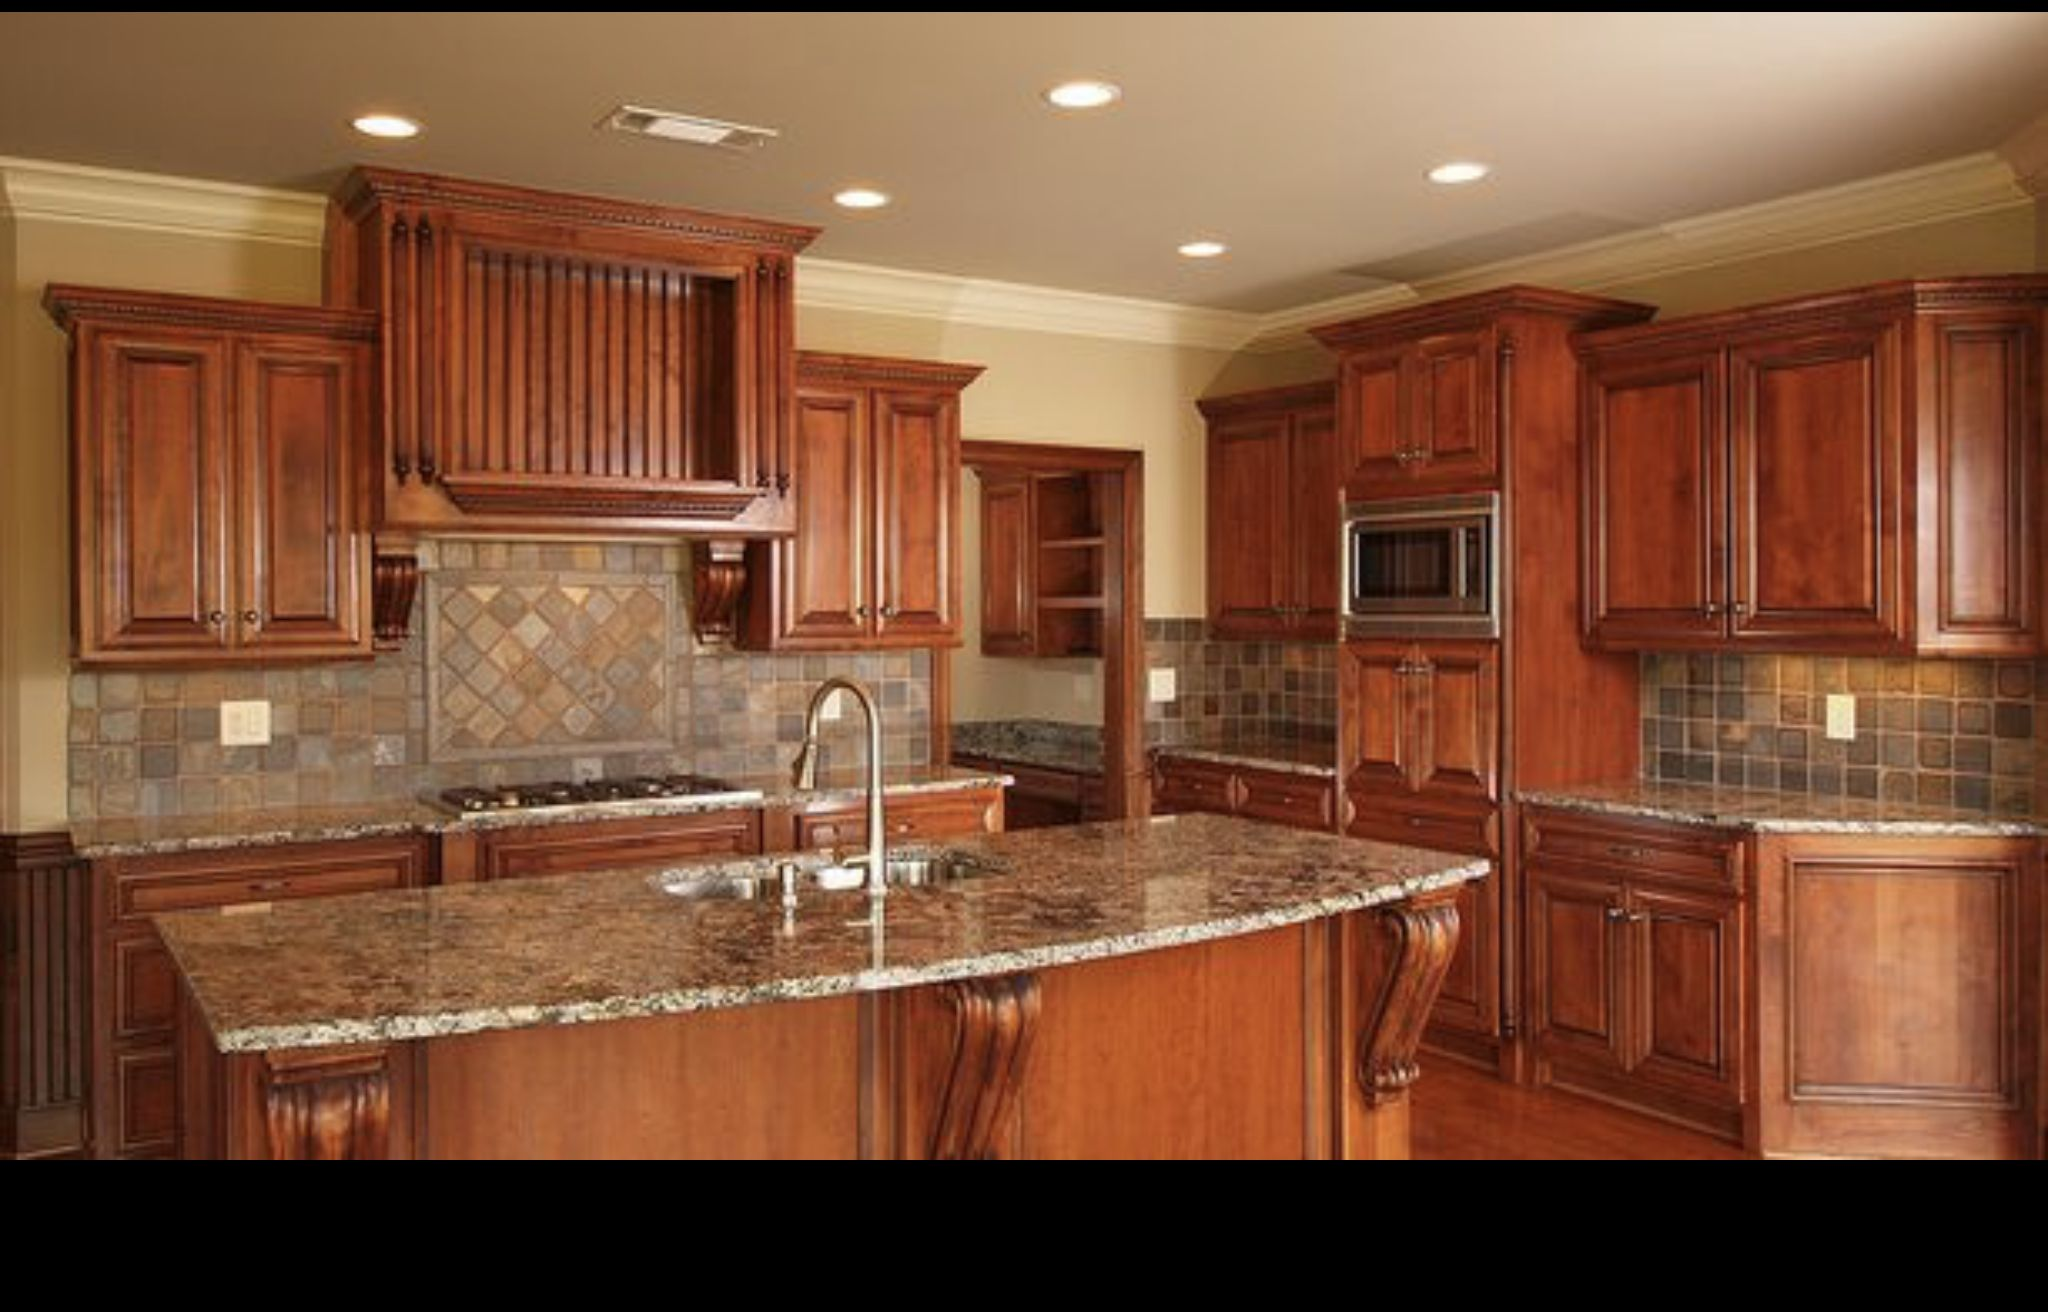 Pin By Alesia Dinsmore On Kitchen In 2020 Kitchen Cabinets Home Decor Kitchen